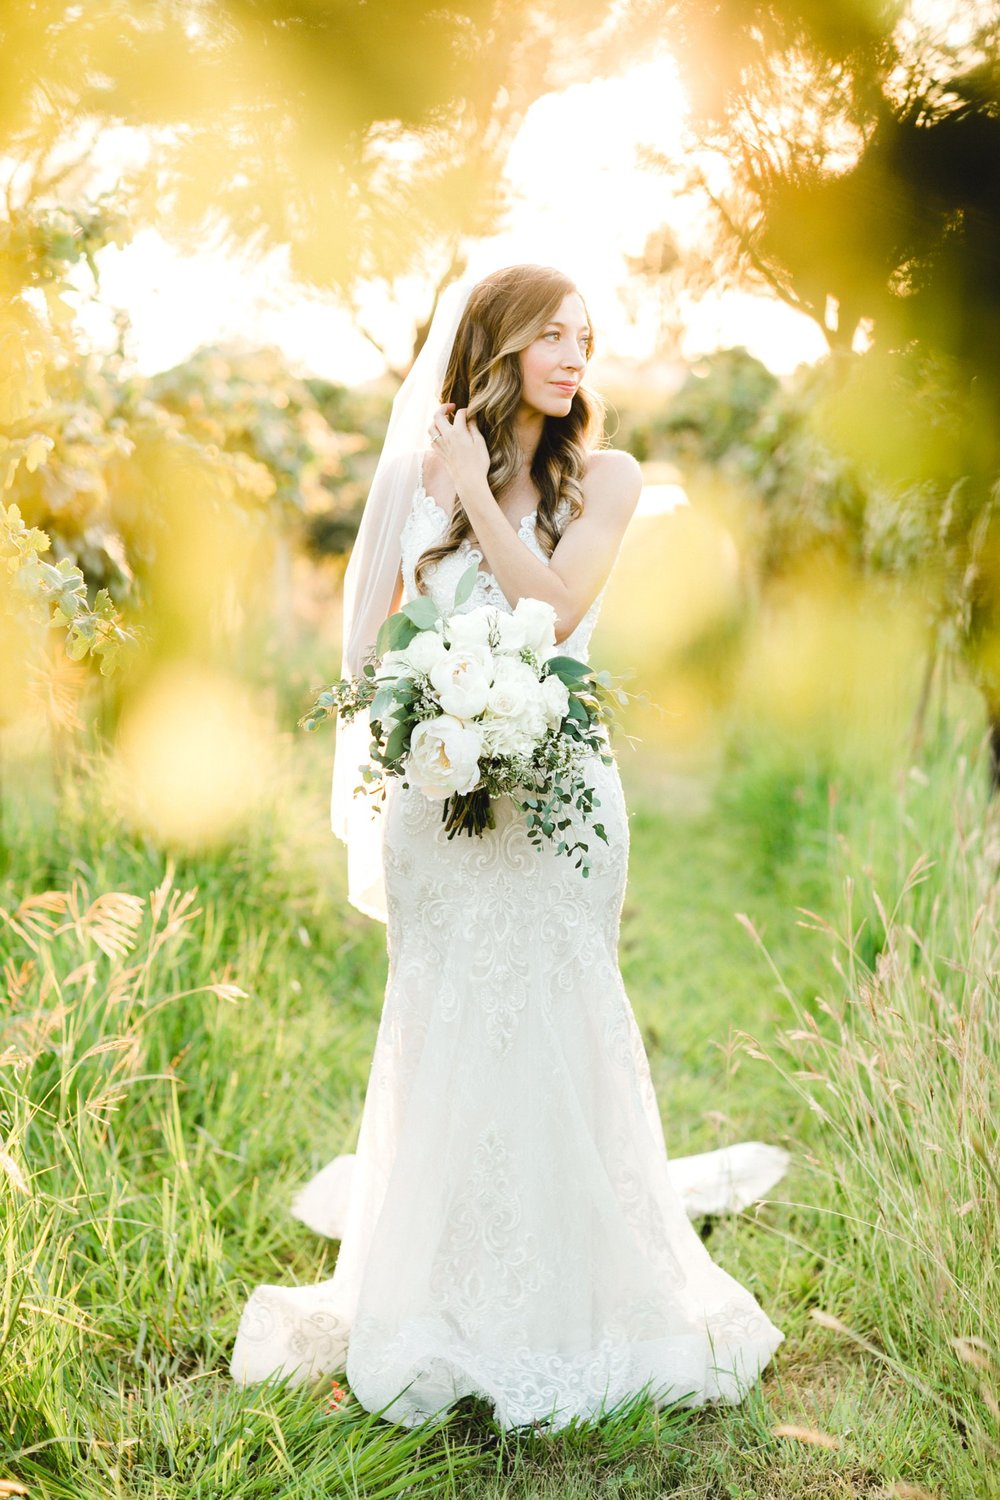 Ashley_Parr_Bridals_ALLEEJ_caprock_winery_romantic_elegant0020.jpg